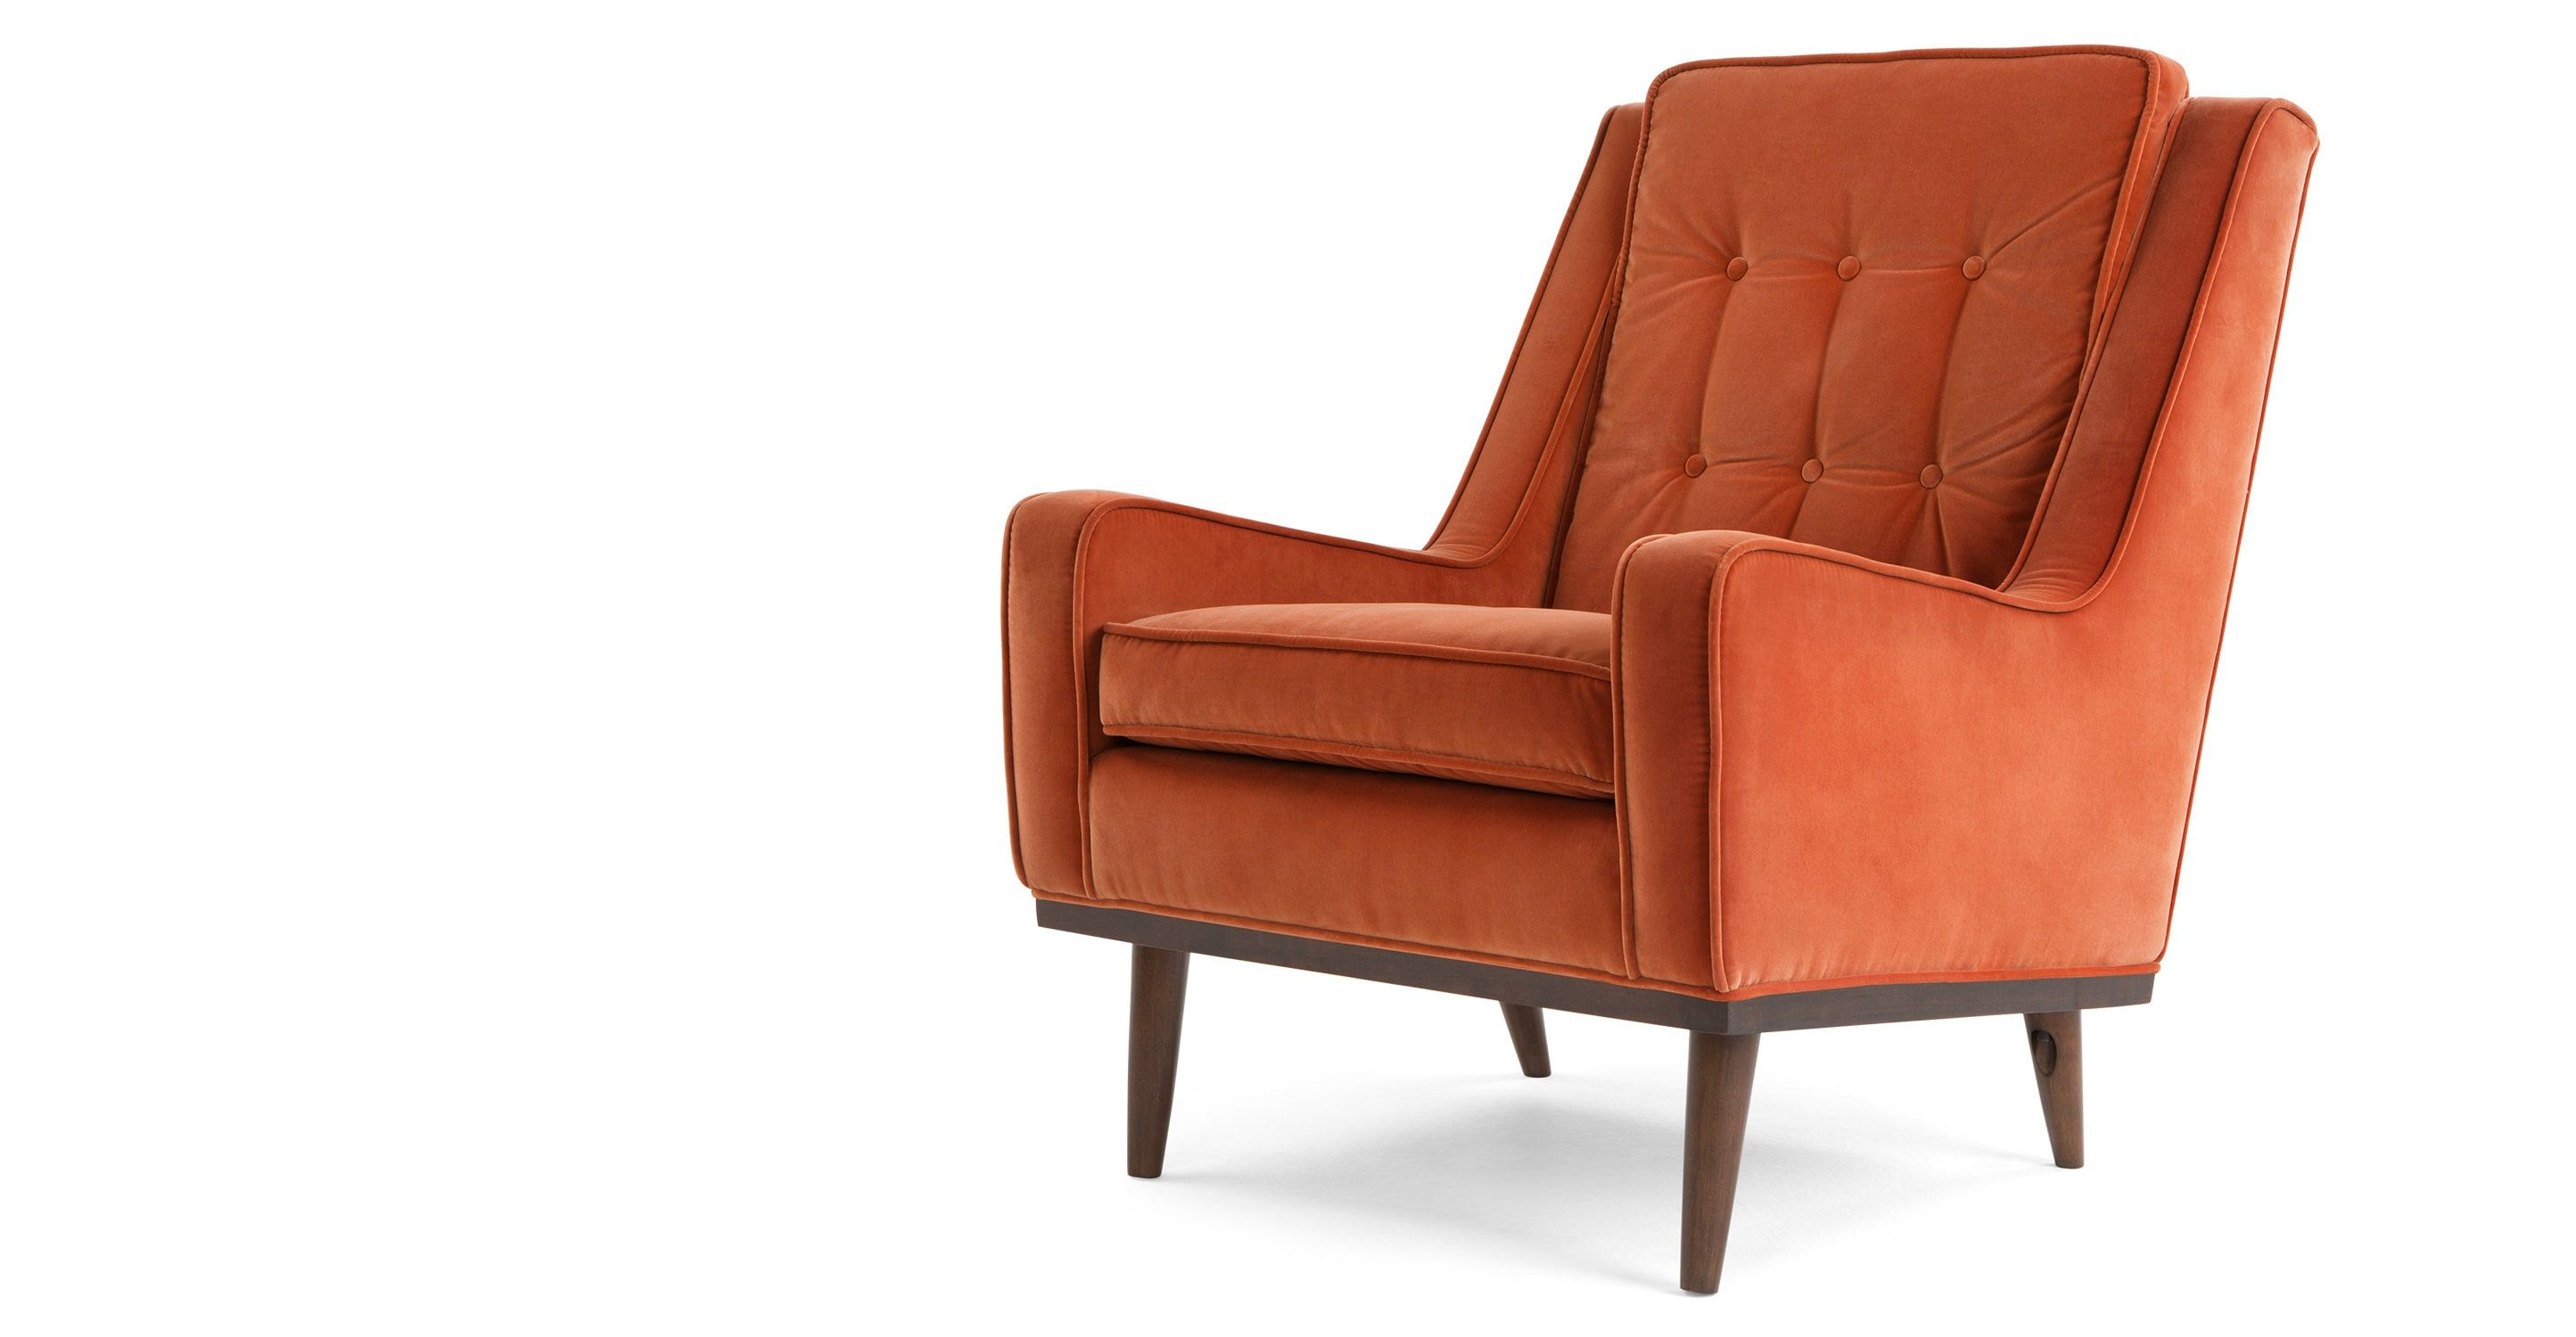 Made Burnt Orange Cotton Velvet Armchair Armchair Orange Accent